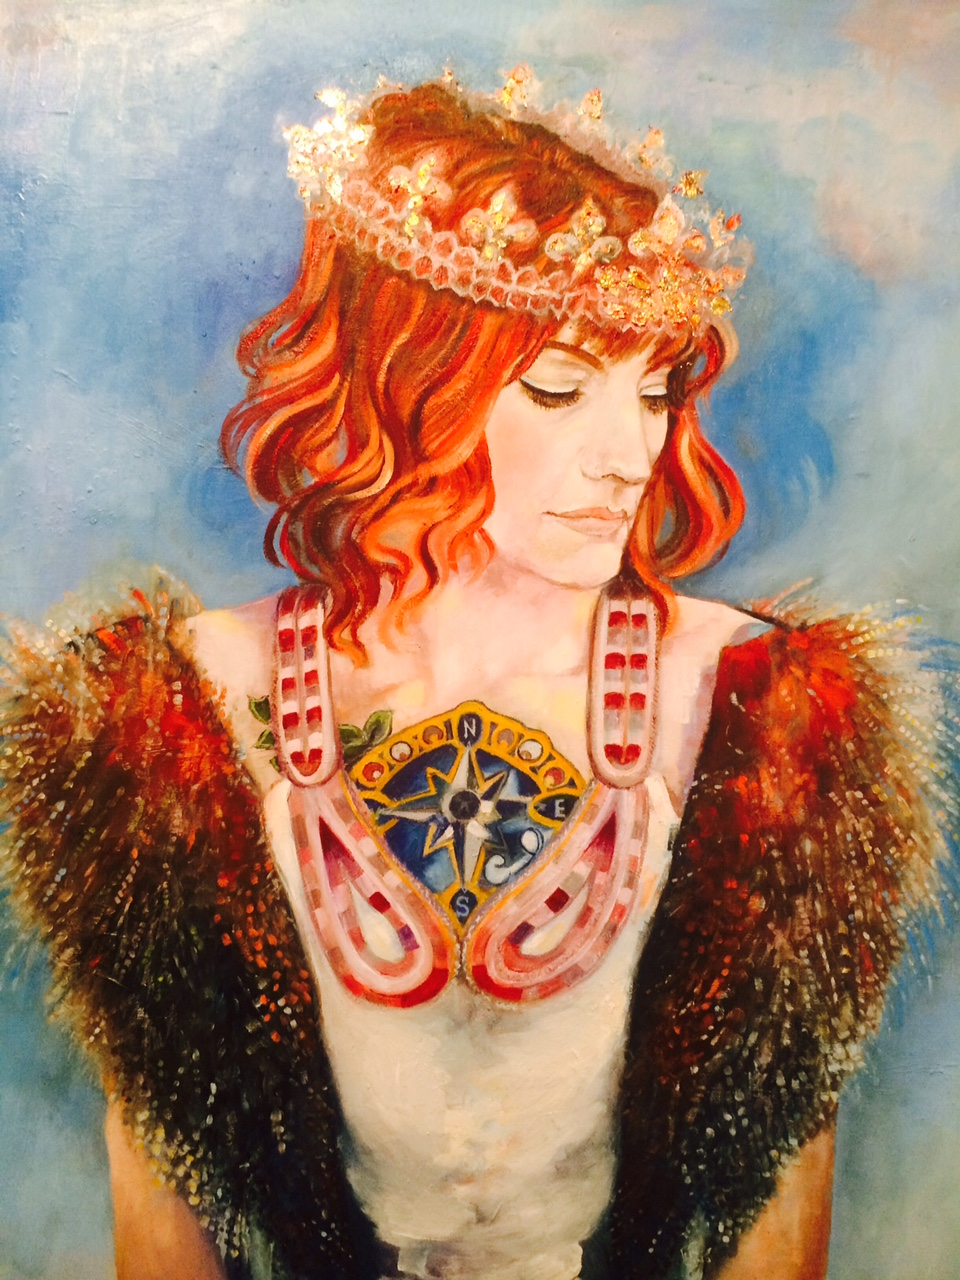 Chanelle: Queen of Fire, 24 x 30 inches, oil and metal leaf on canvas, 2015